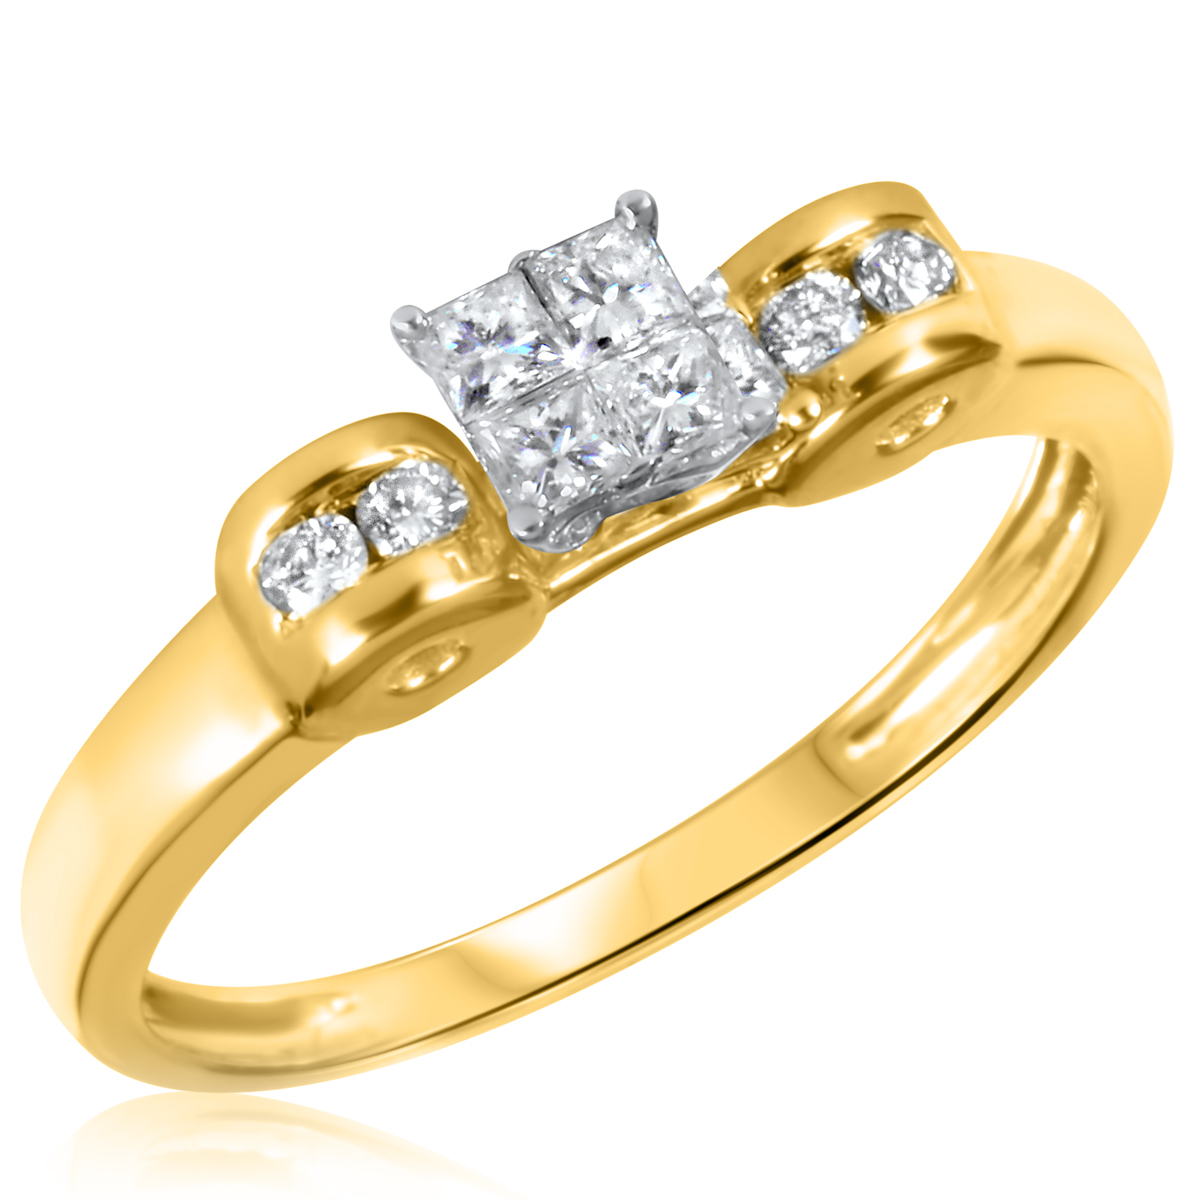 1/3 CT. T.W. Diamond Ladies Engagement Ring 10K Yellow Gold- Size 8